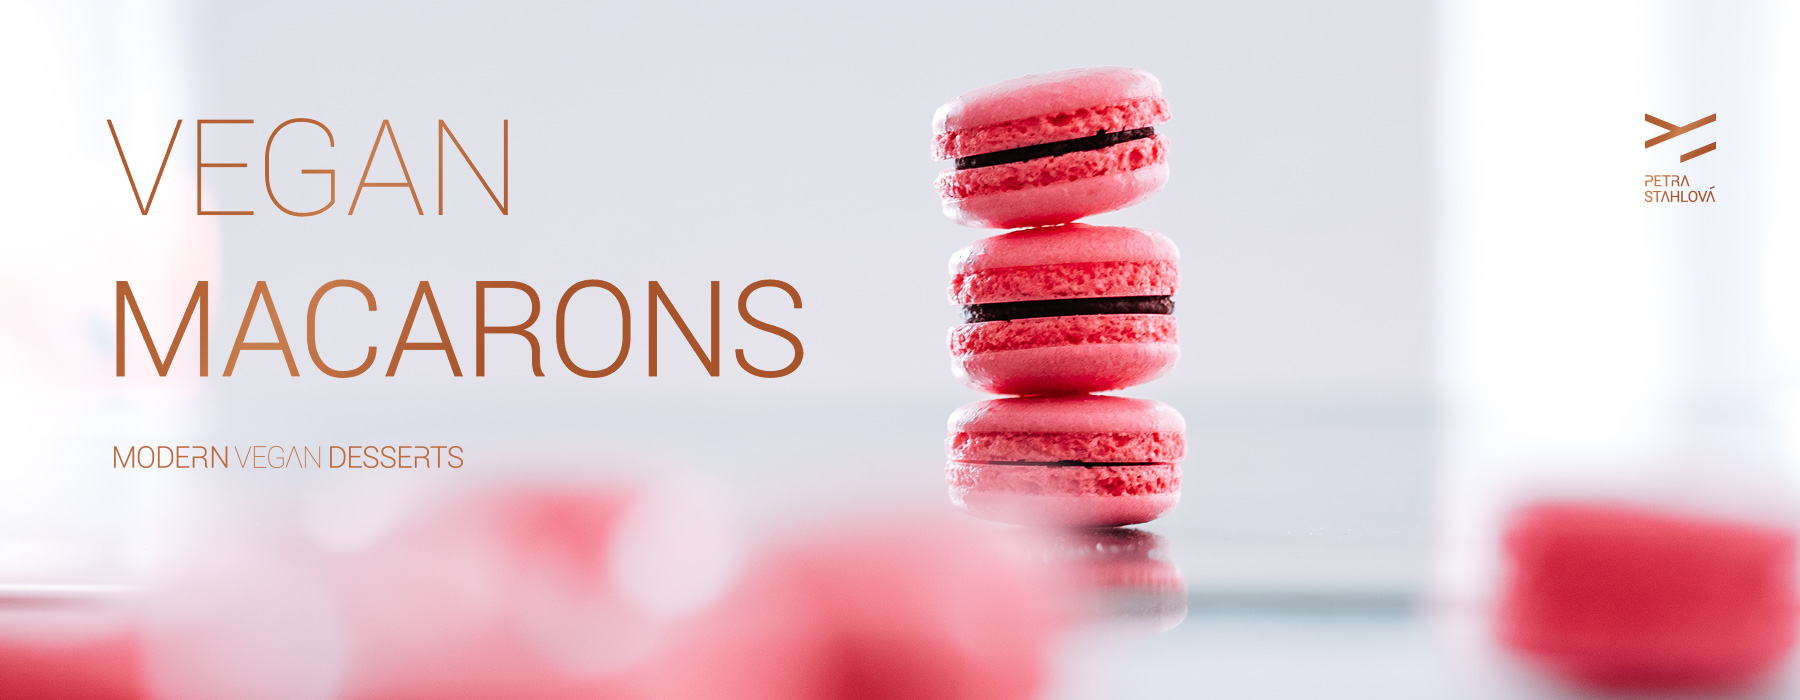 Vegan Macarons - Modern Vegan Desserts - Available in English - April 2019